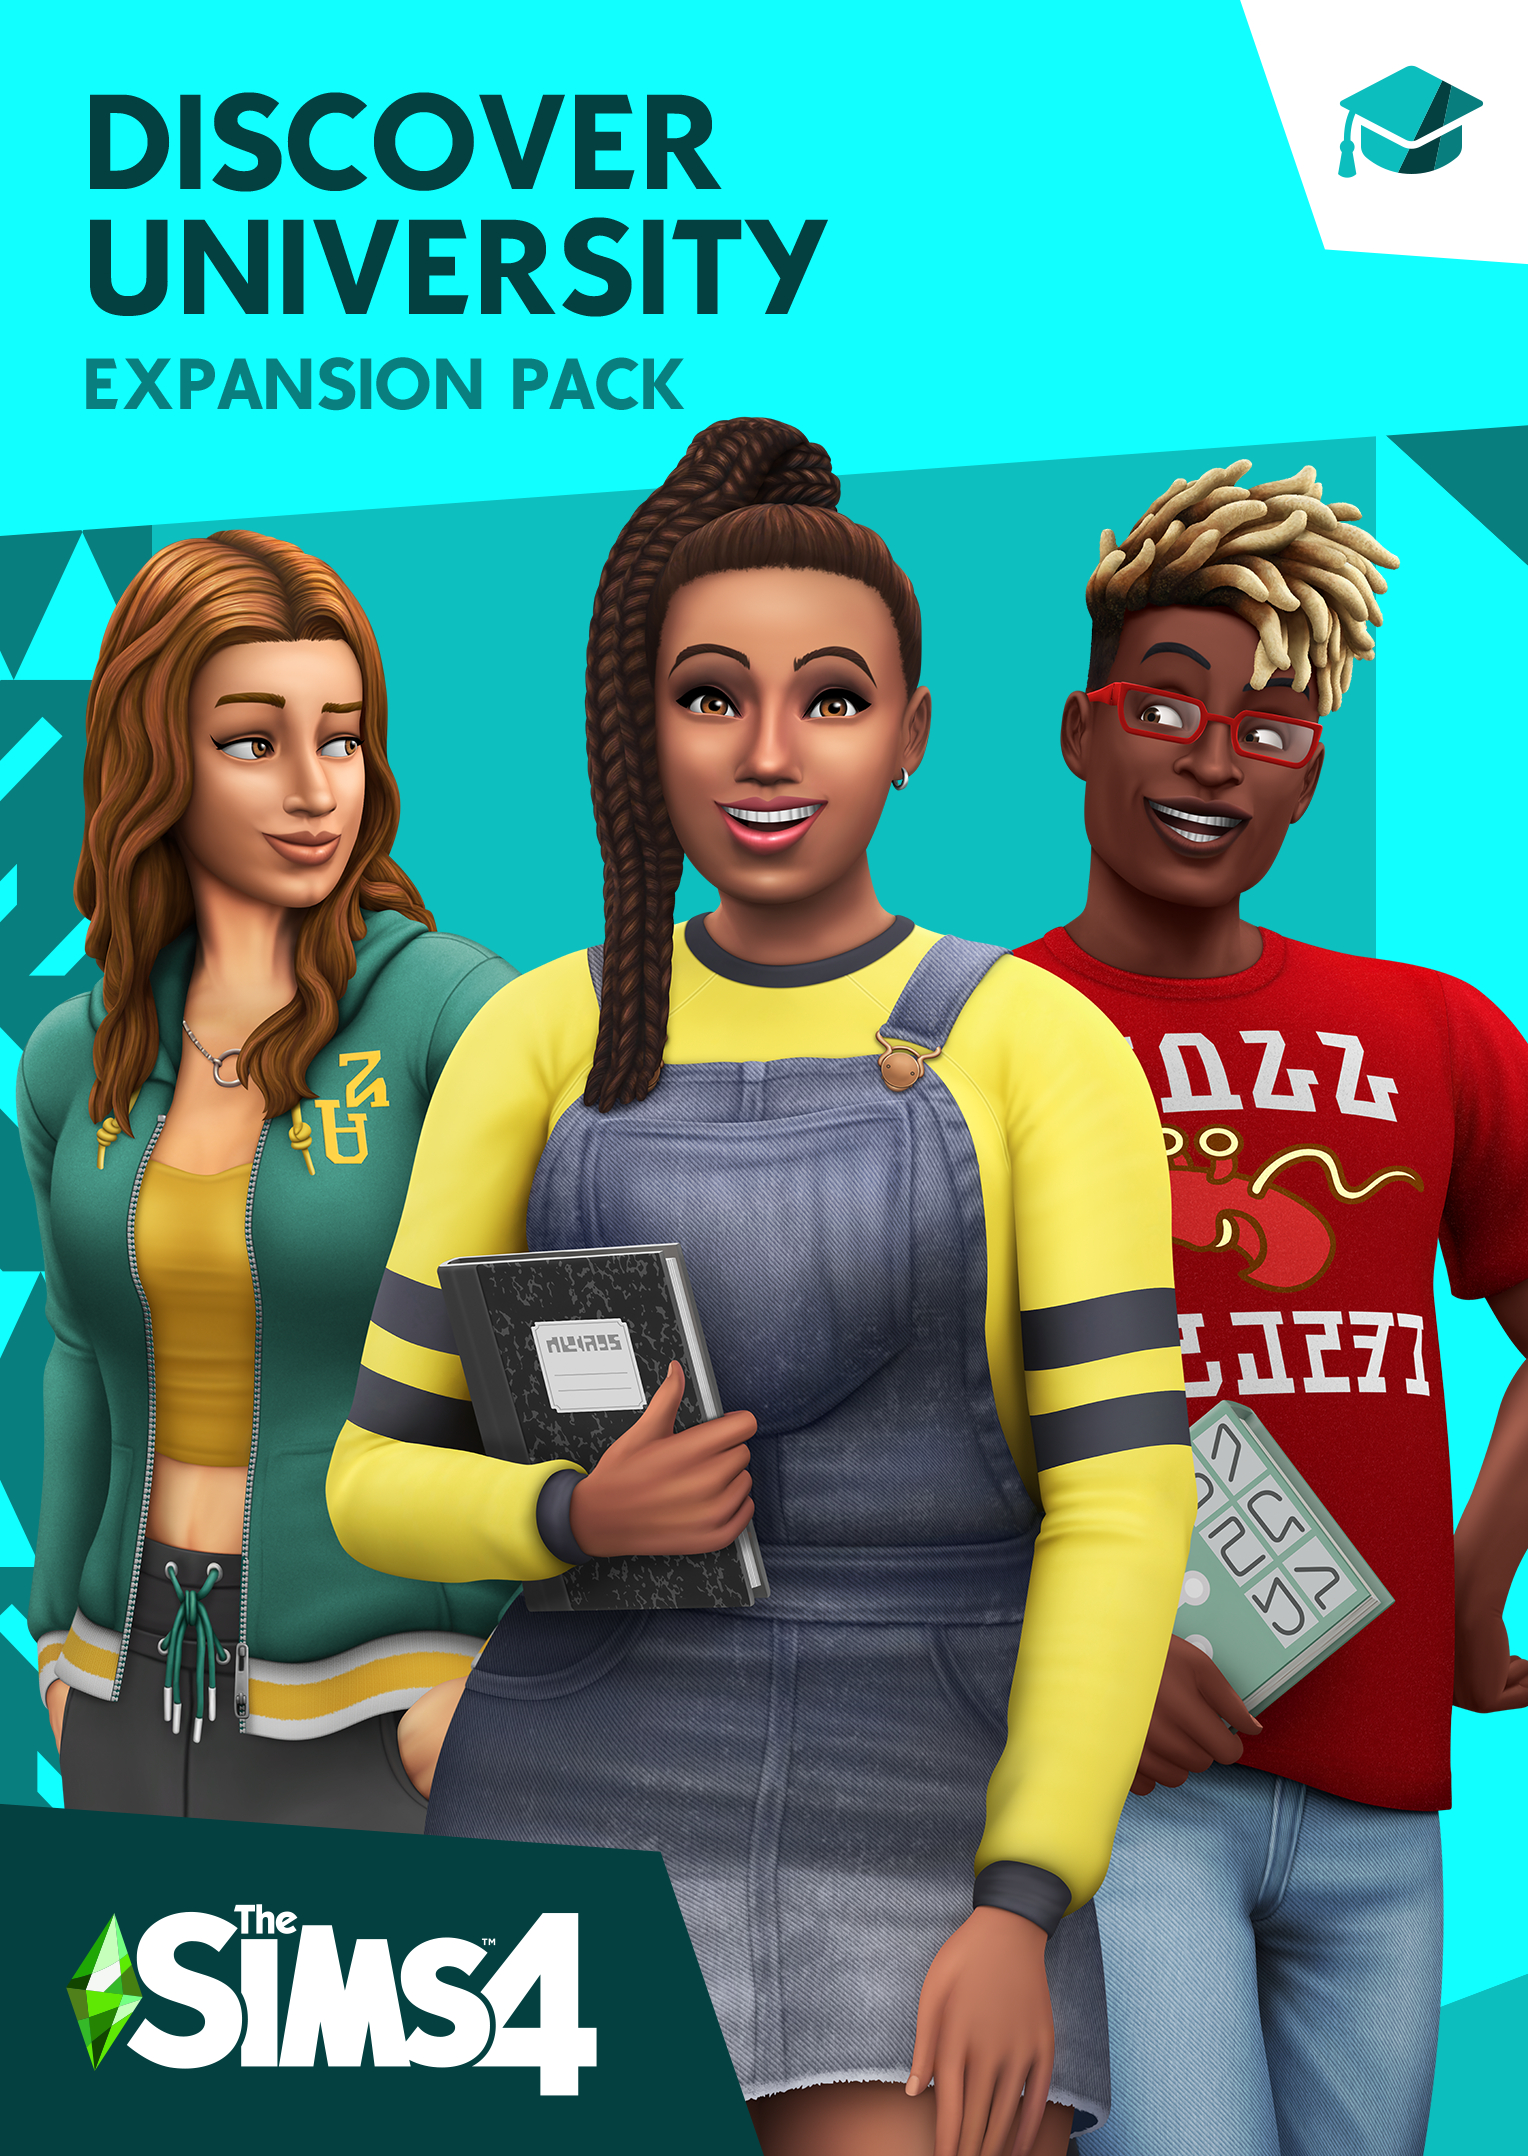 The Sims 4 Discover University: Official Logo, Box Art, Icon inside Sims 4 Icons 2020